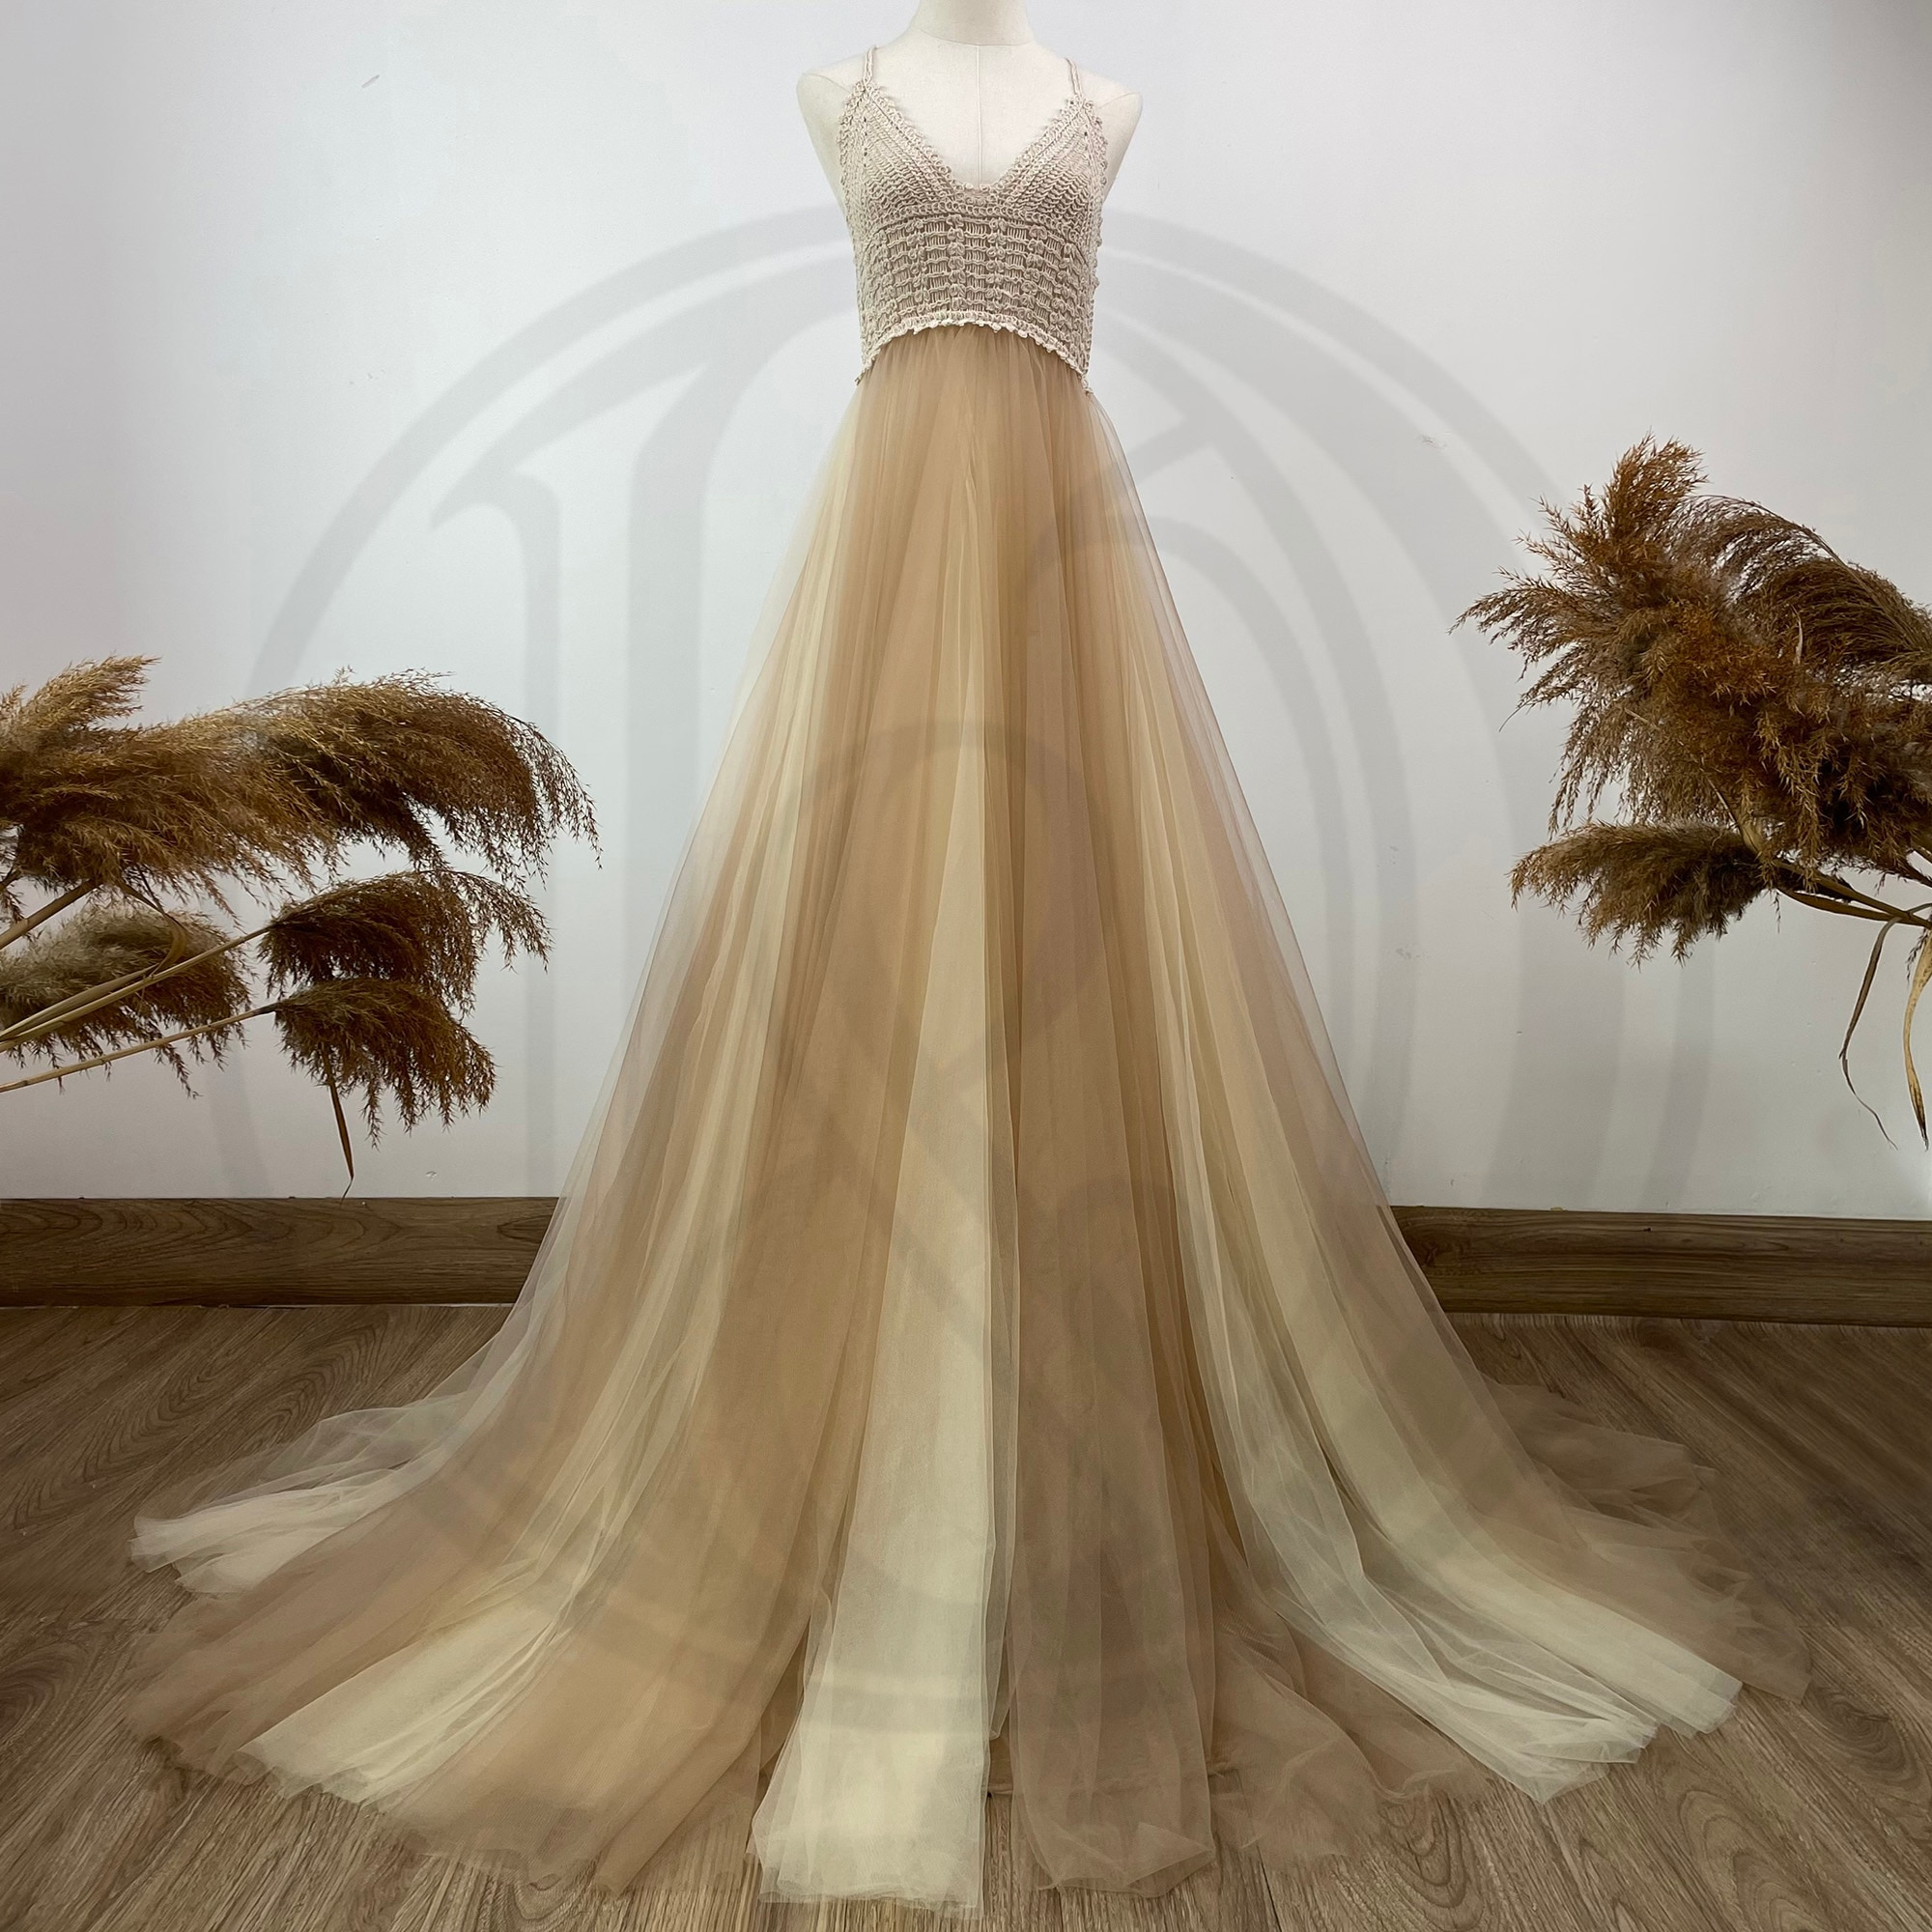 Photo Shoot Props Condole Belt Kaftan Maxi Tulle Robe Maternity Dress Evening Party Costume for Women Photography Accessories